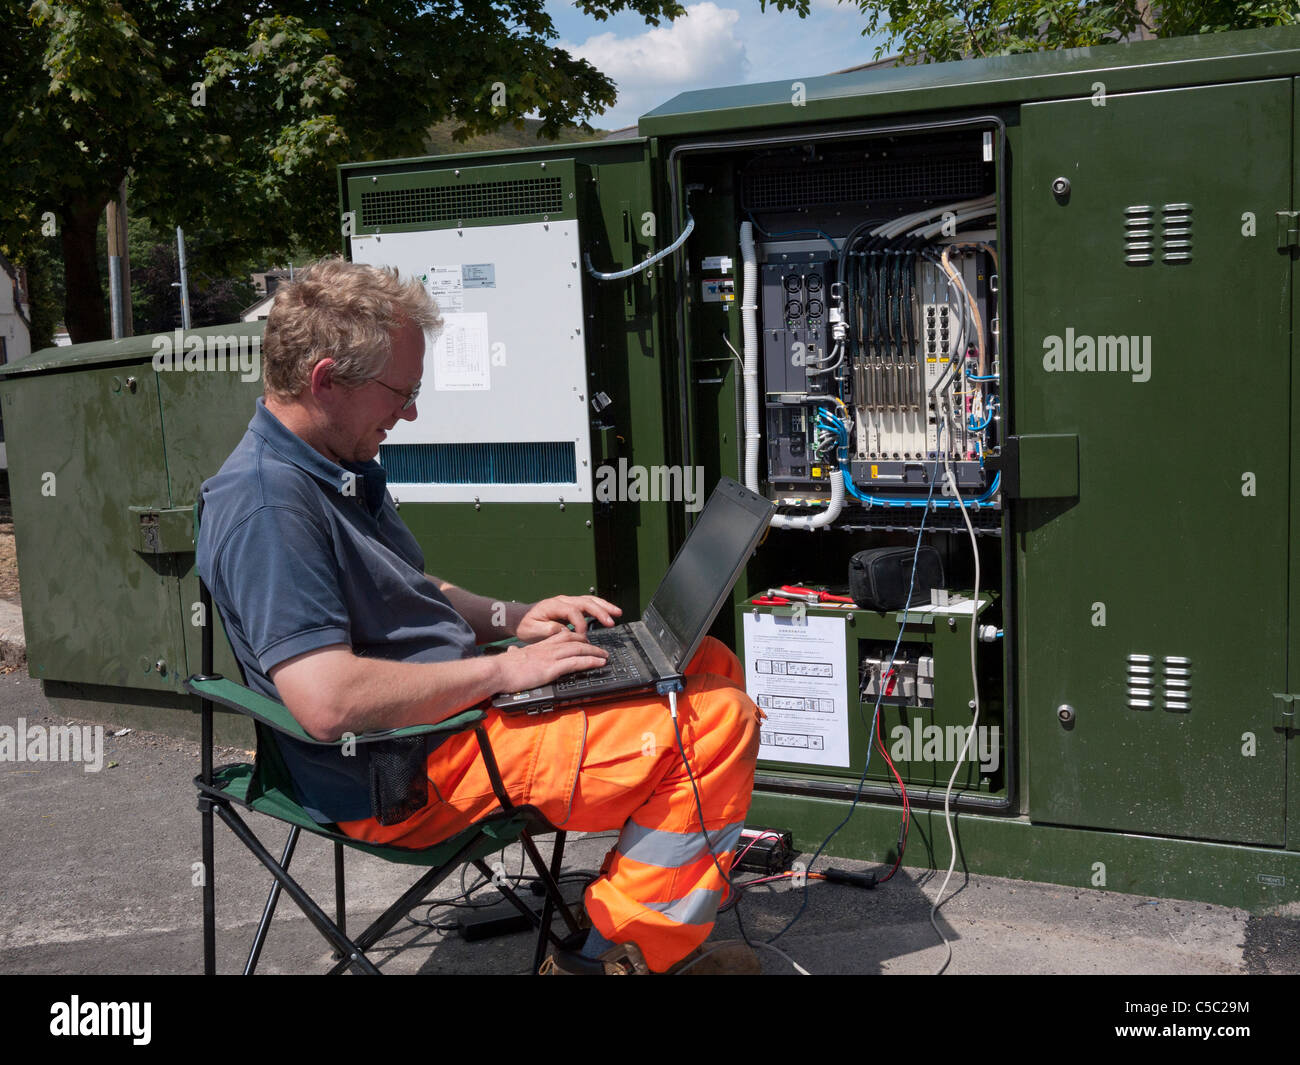 Engineer adding software to Fibre Optics Broadband Network Junction Box. Mossley,Lancashire,England, UK. - Stock Image